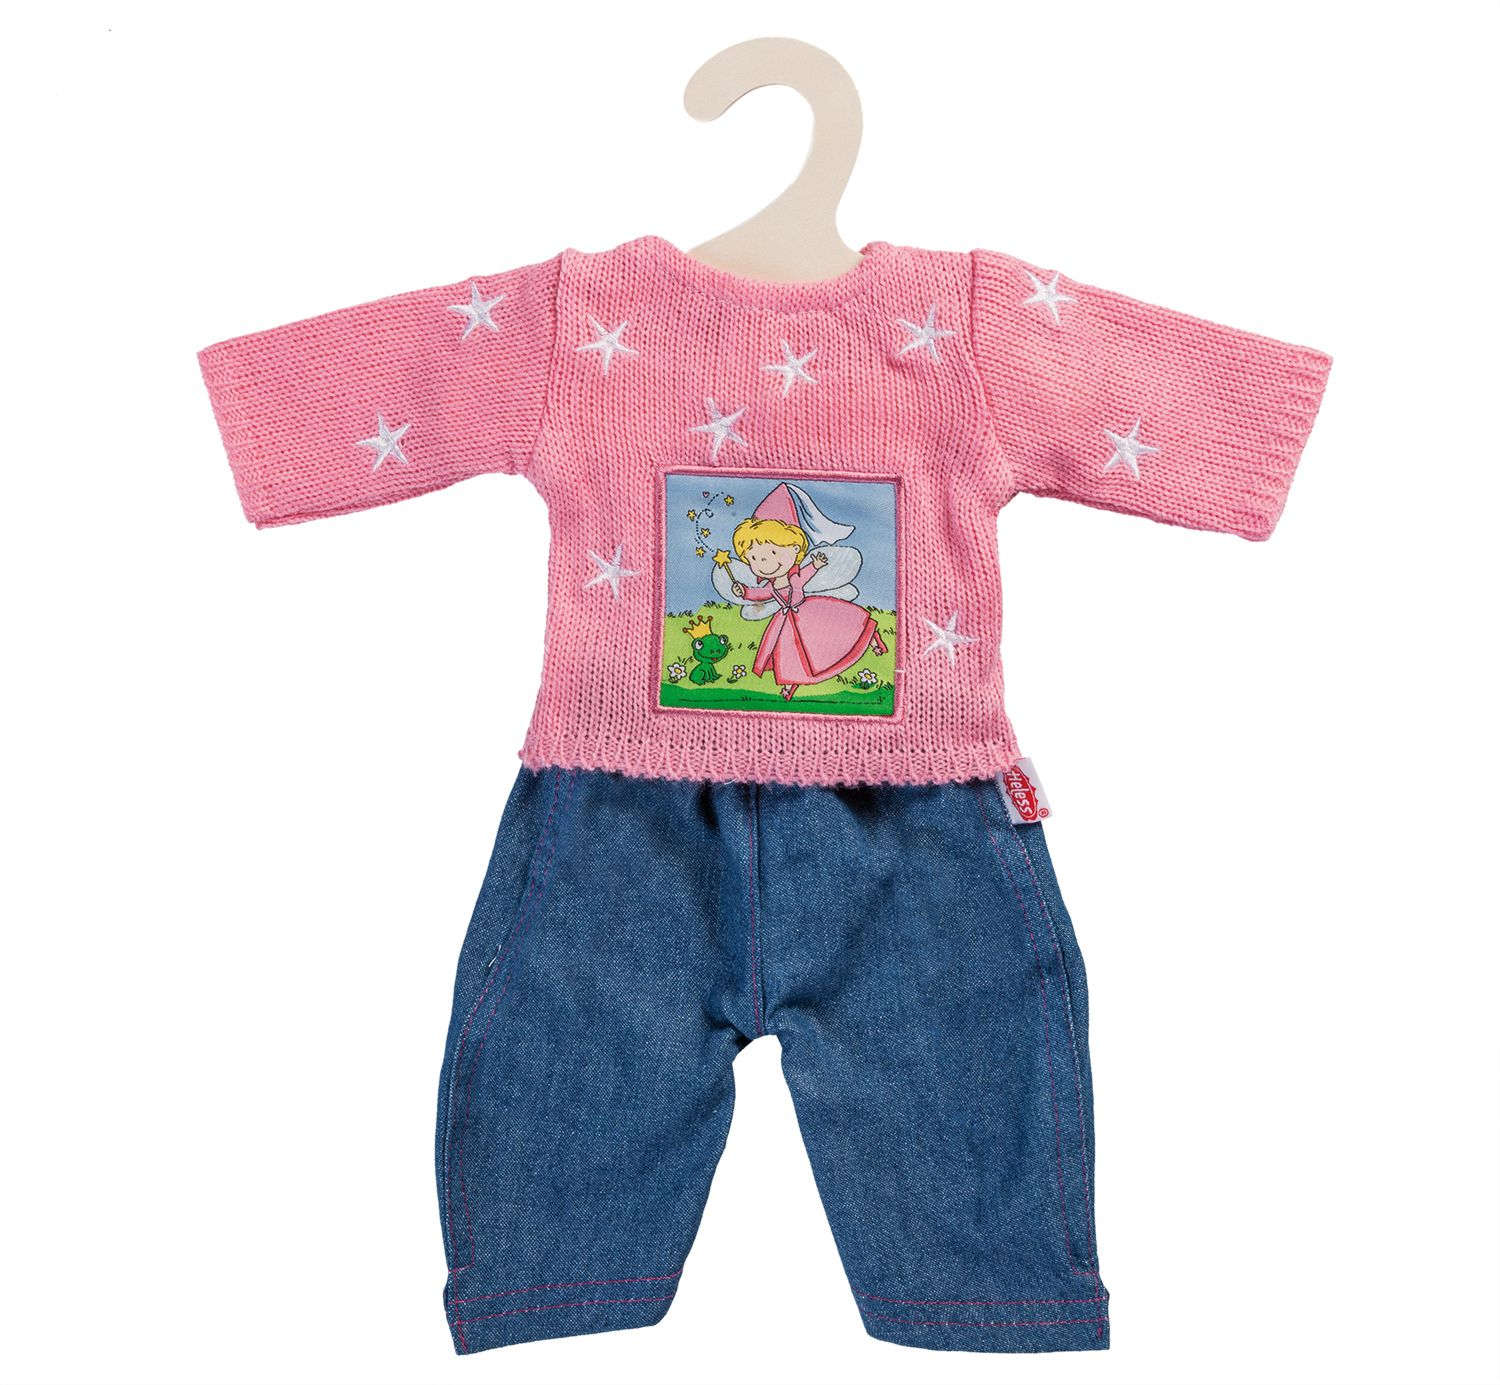 HELESS® Heless® Puppenkleidung  Gr. 35-45 cm, »Pullover rosa mit Jeans« (2tlg.)